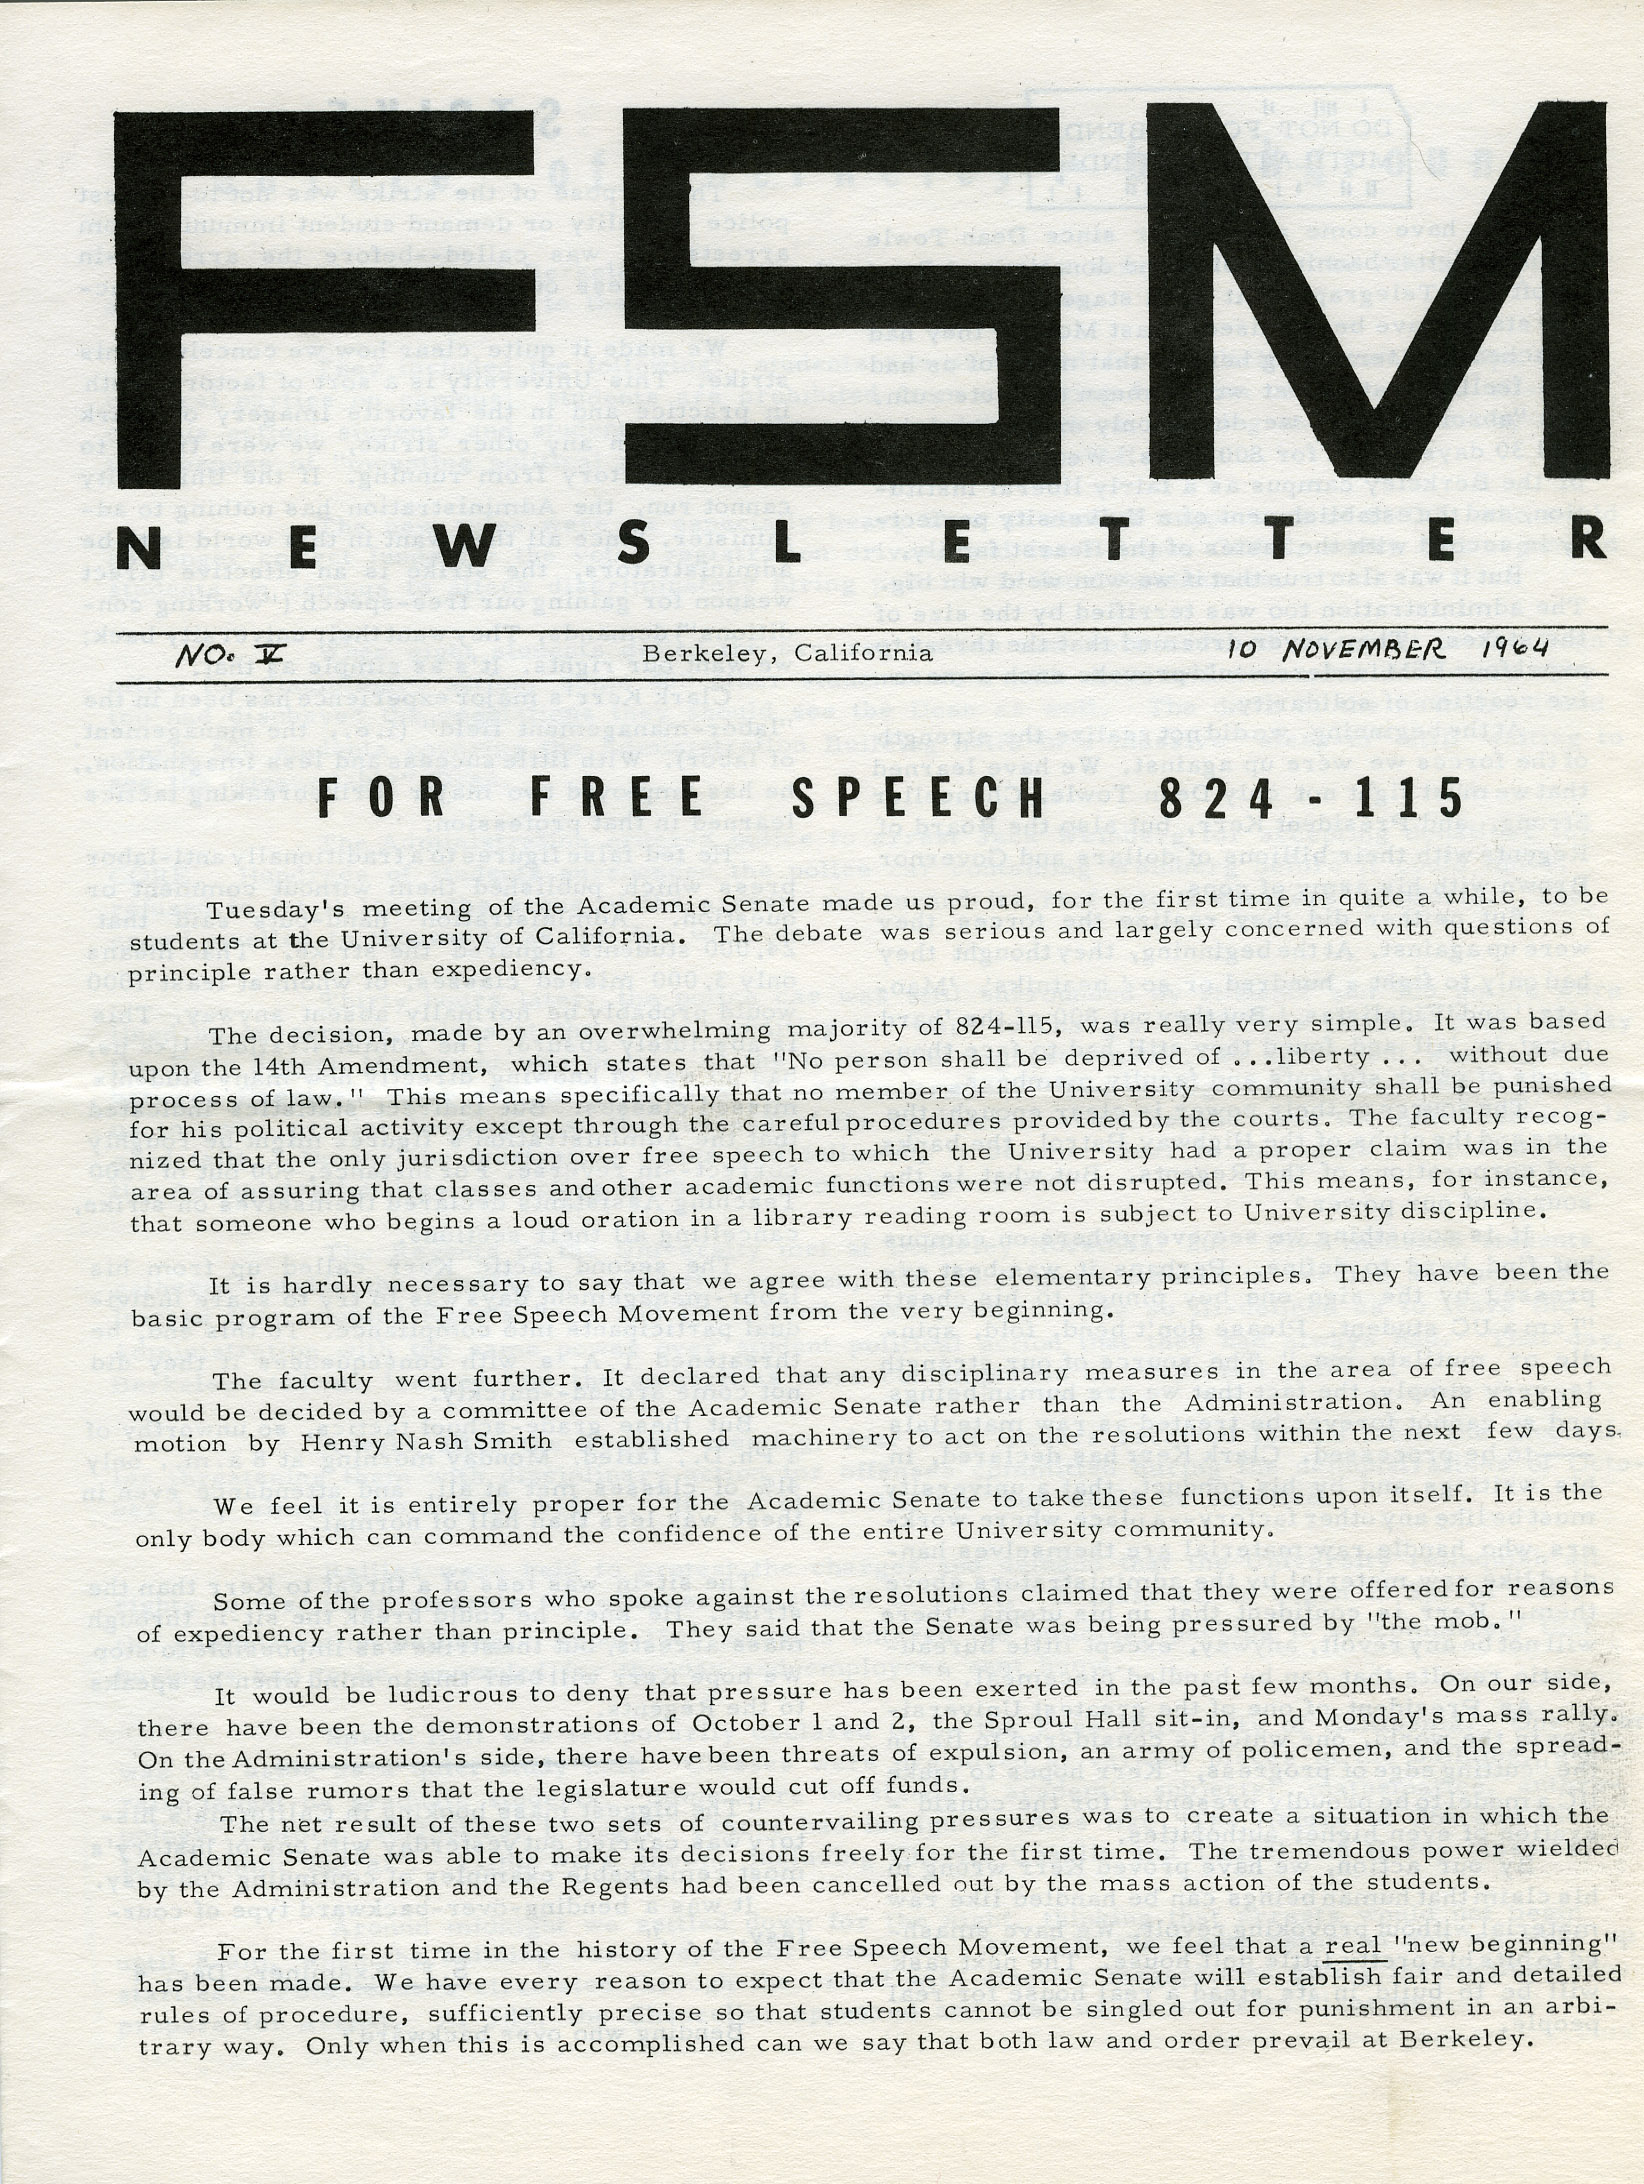 Image of Free Speech Movement newsletter